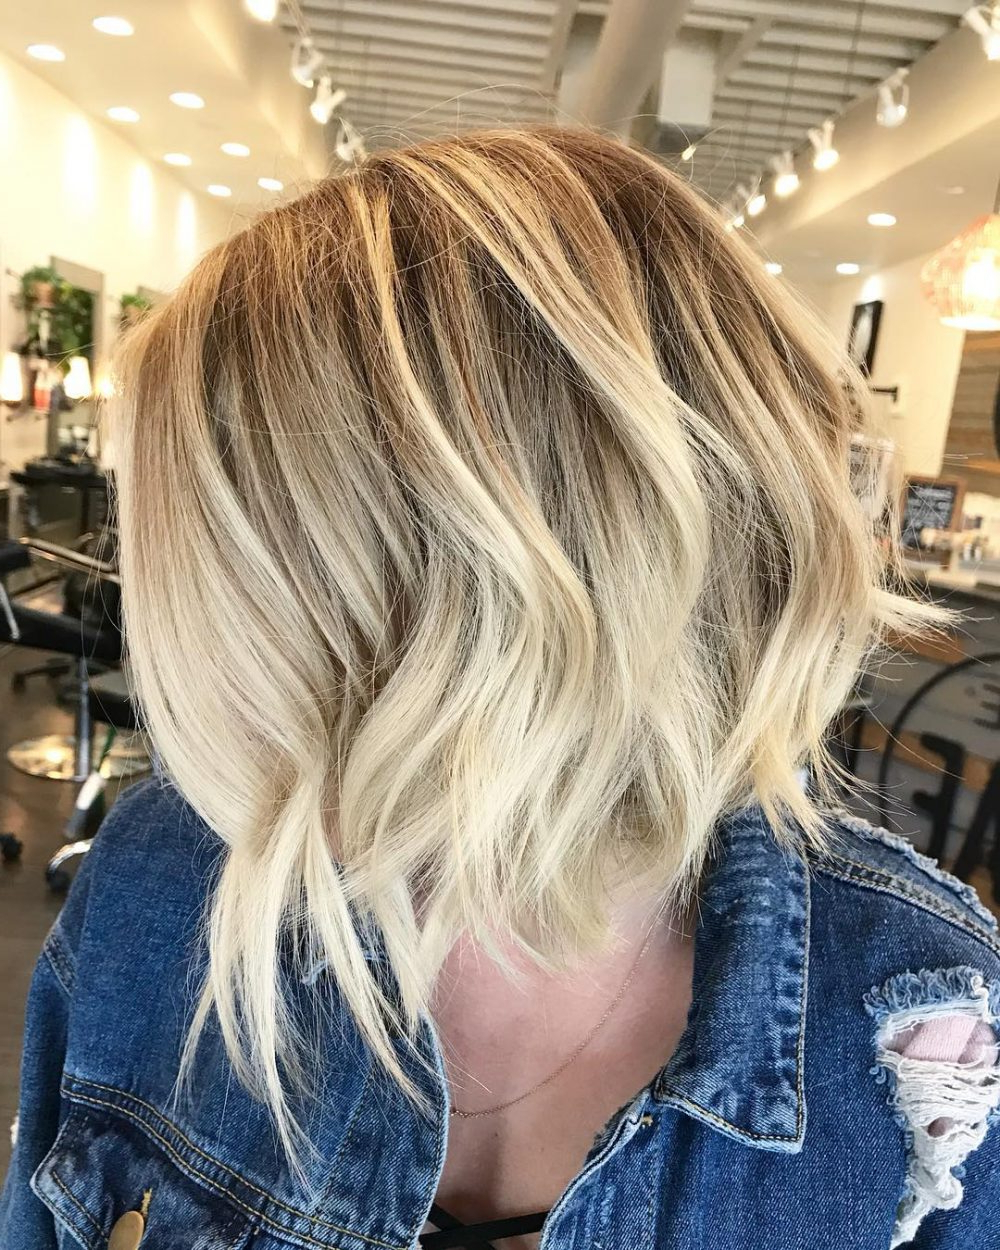 34 Best Choppy Layered Hairstyles (That Will Flatter Anyone) Throughout Latest Choppy Dimensional Layers For Balayage Long Hairstyles (View 3 of 20)